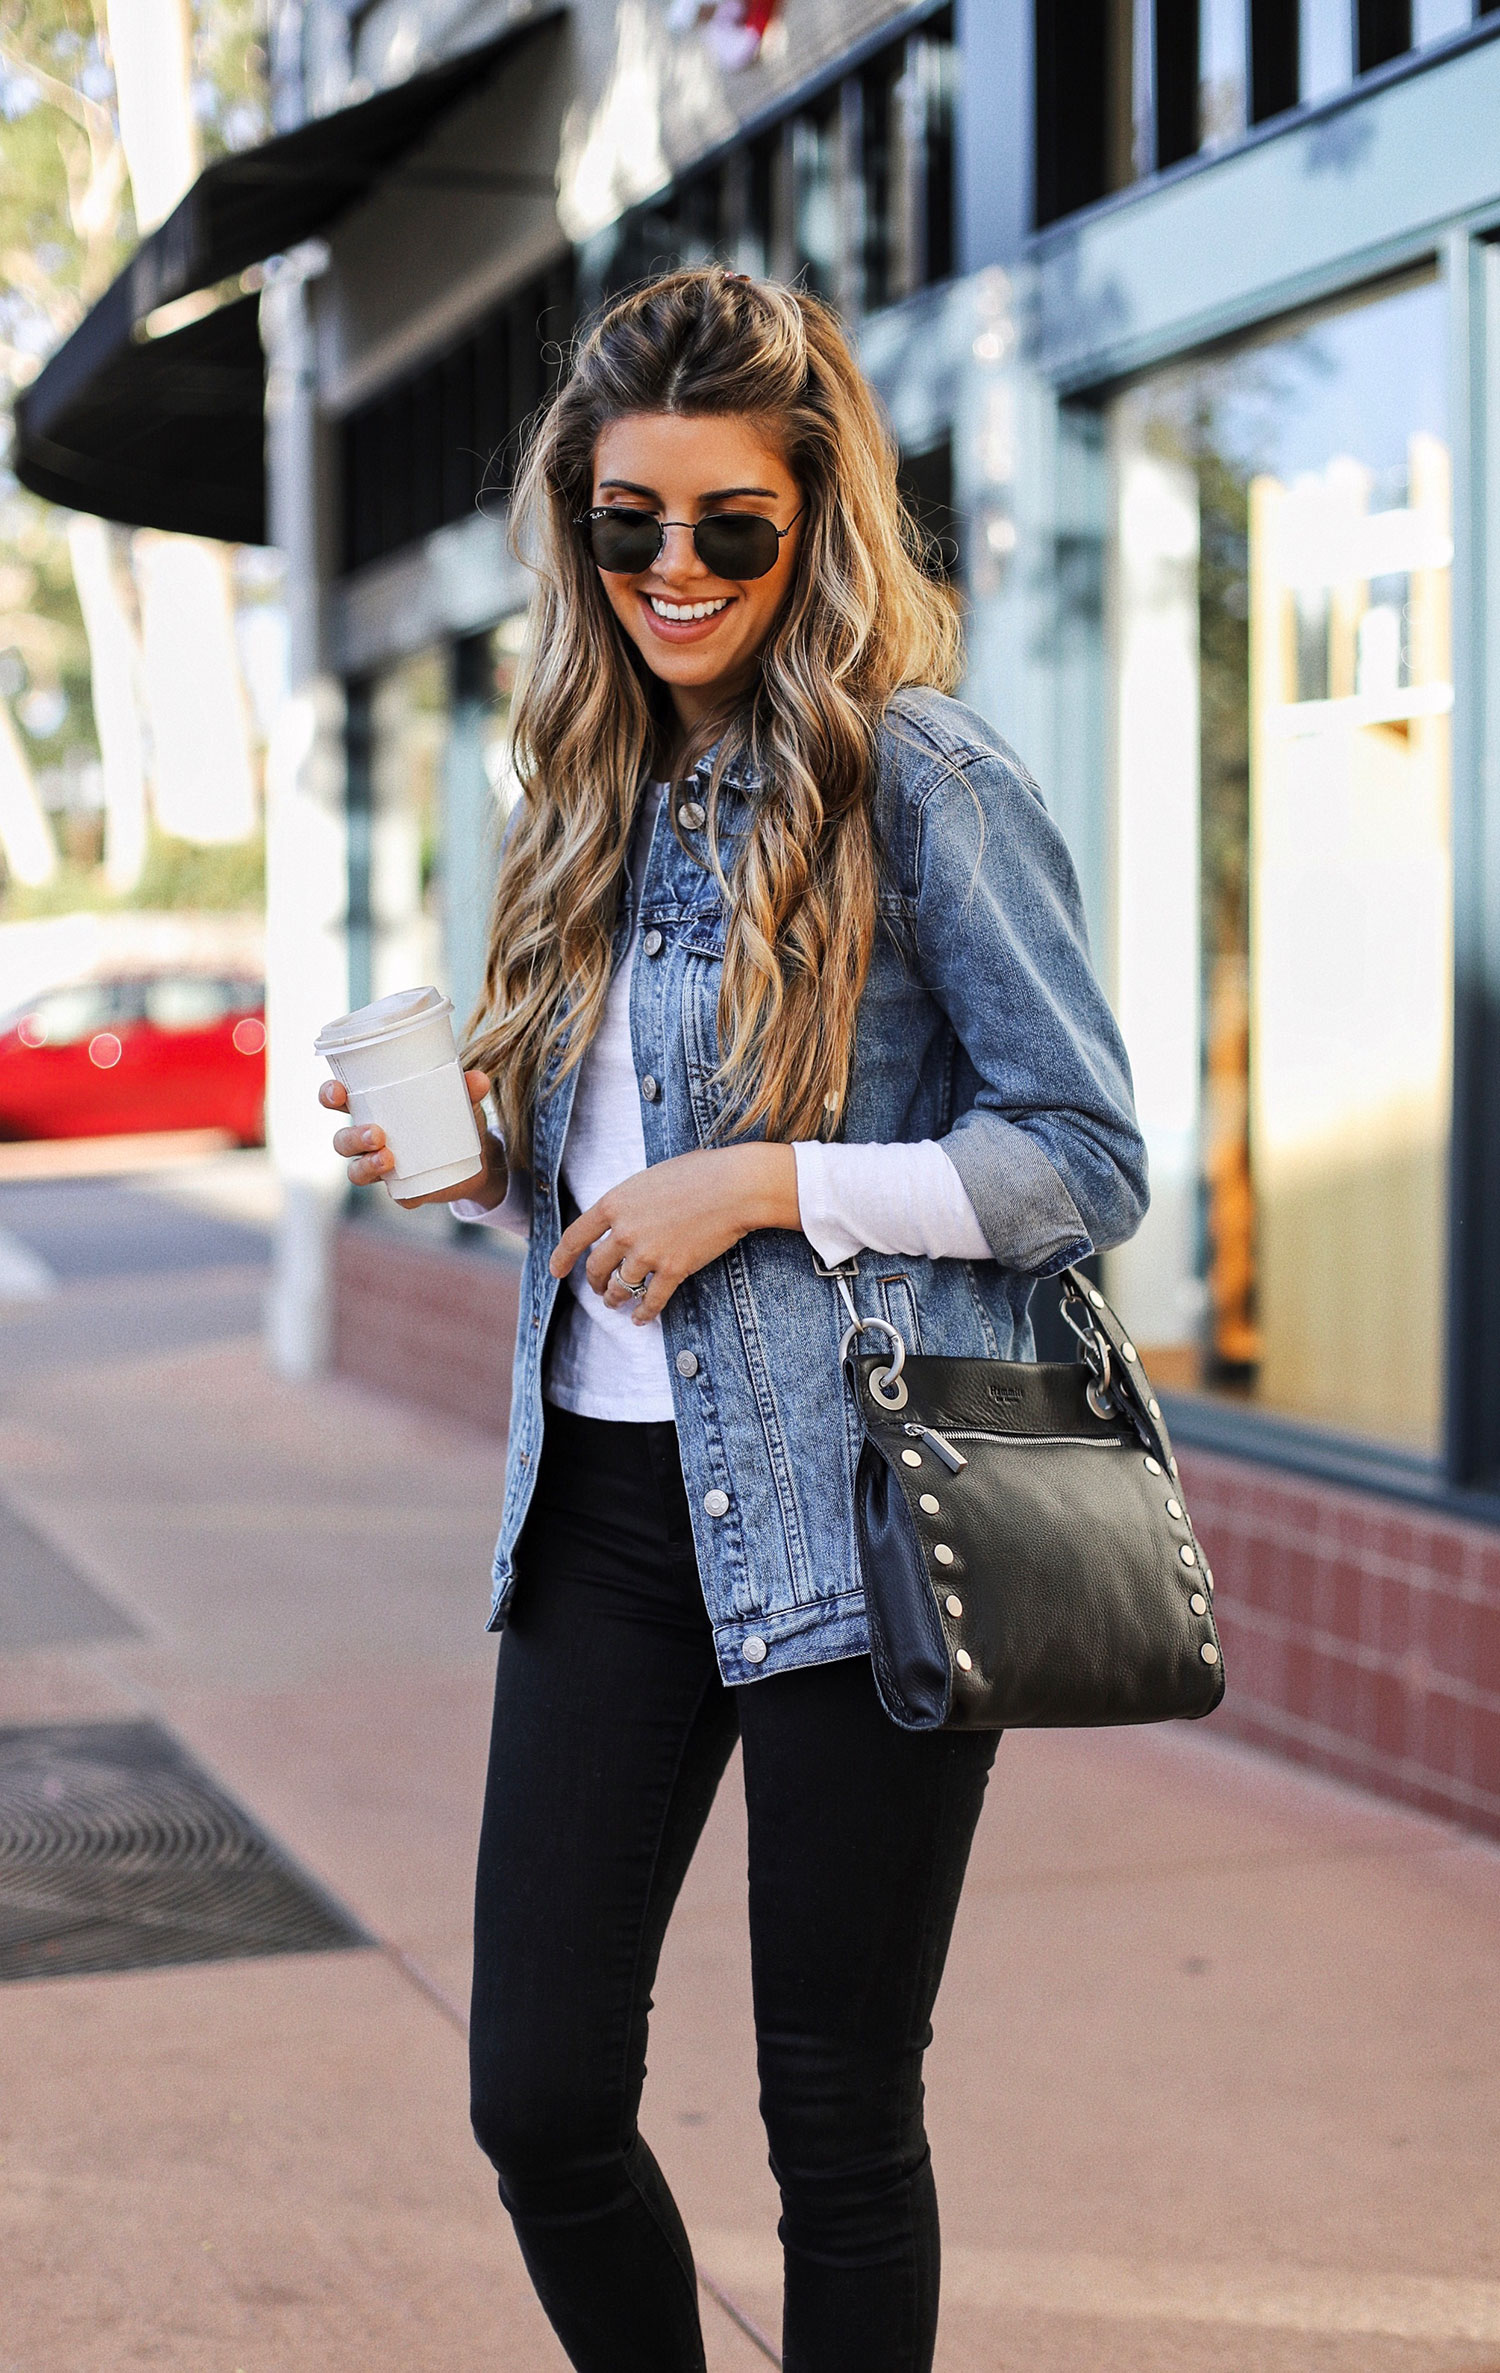 Fashion blogger Adelina Perrin of The Charming Olive wearing Madwell denim jacket and Hammitt LA cross body bag